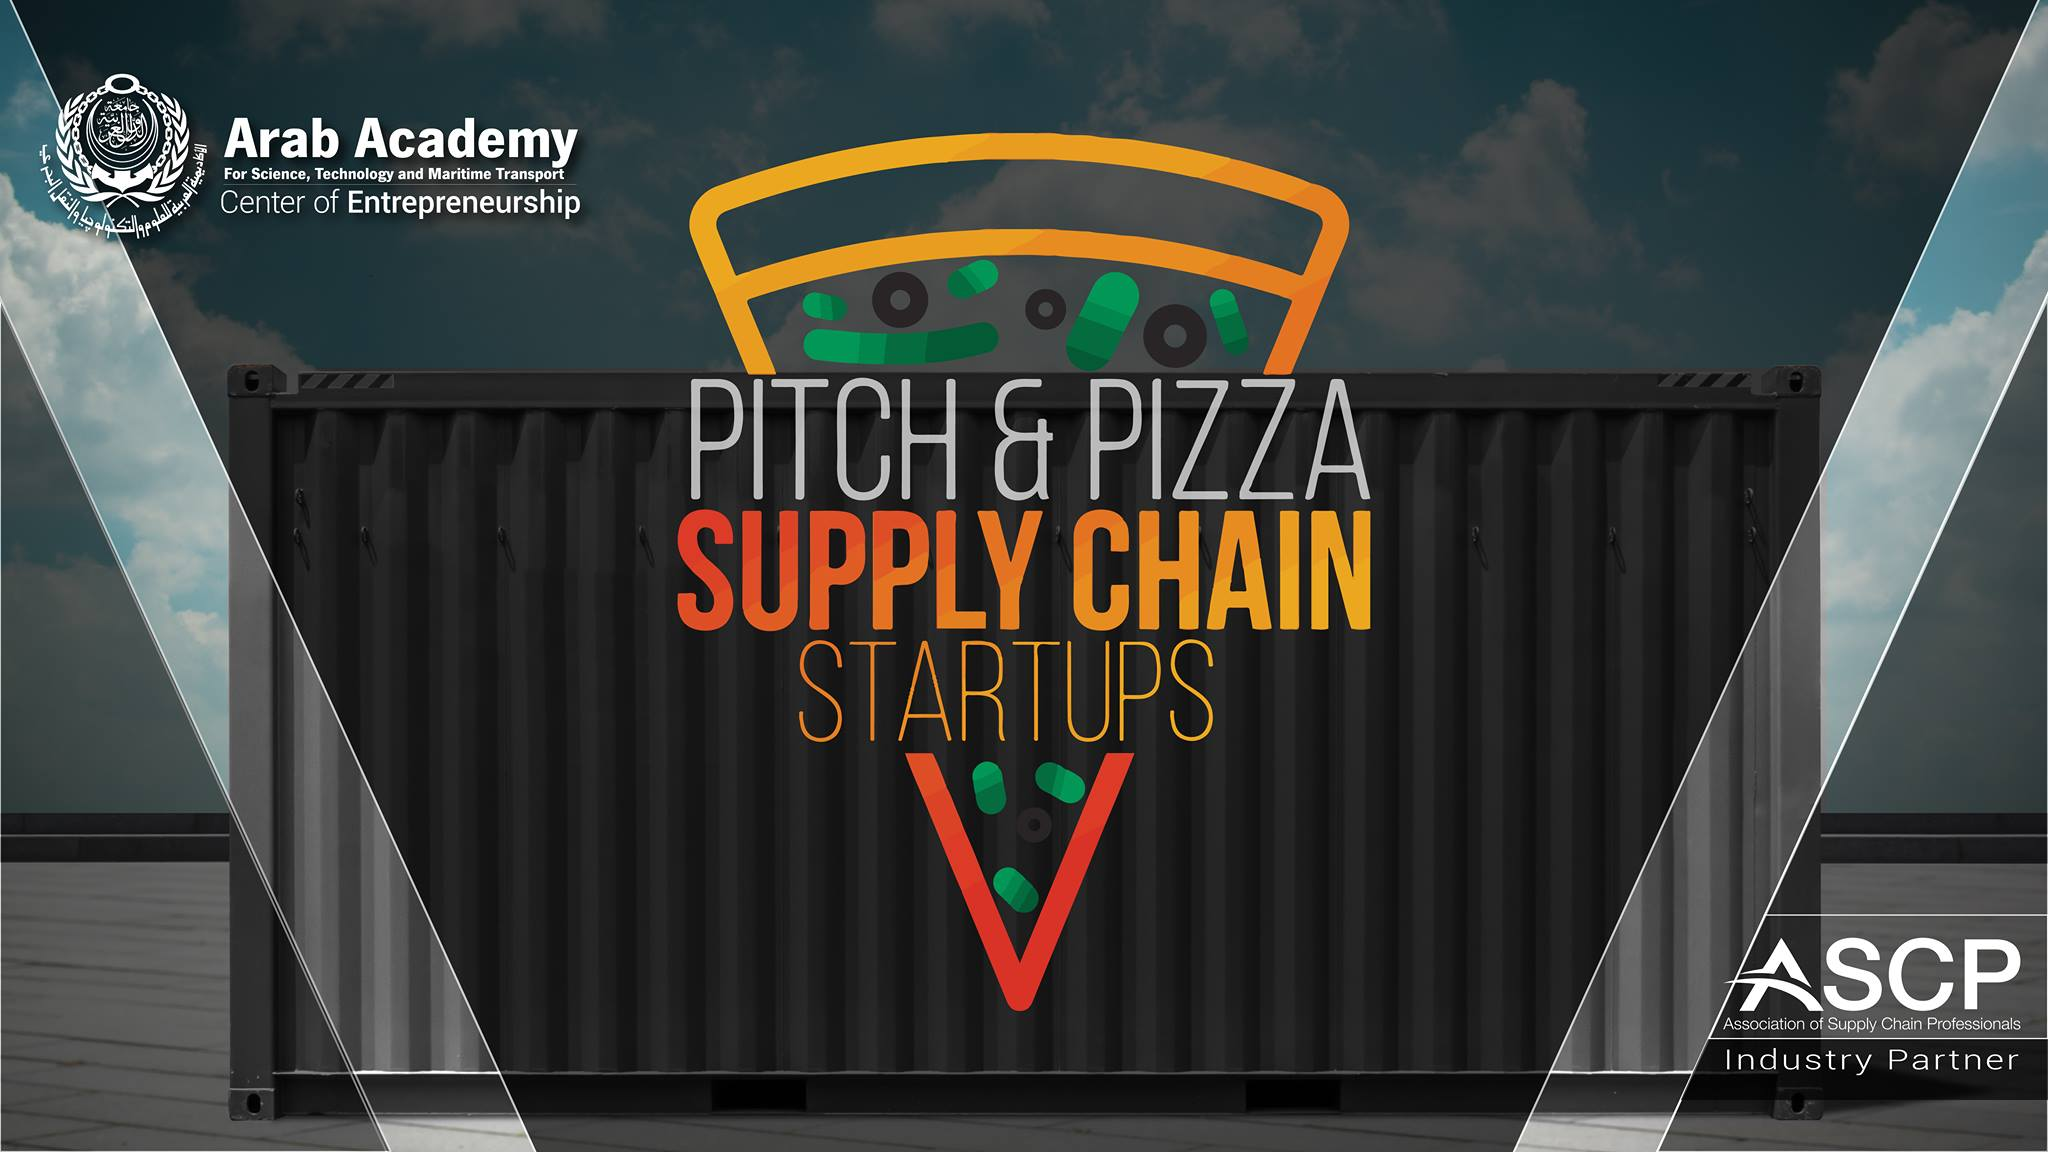 فاعلية Pitch and Pizza